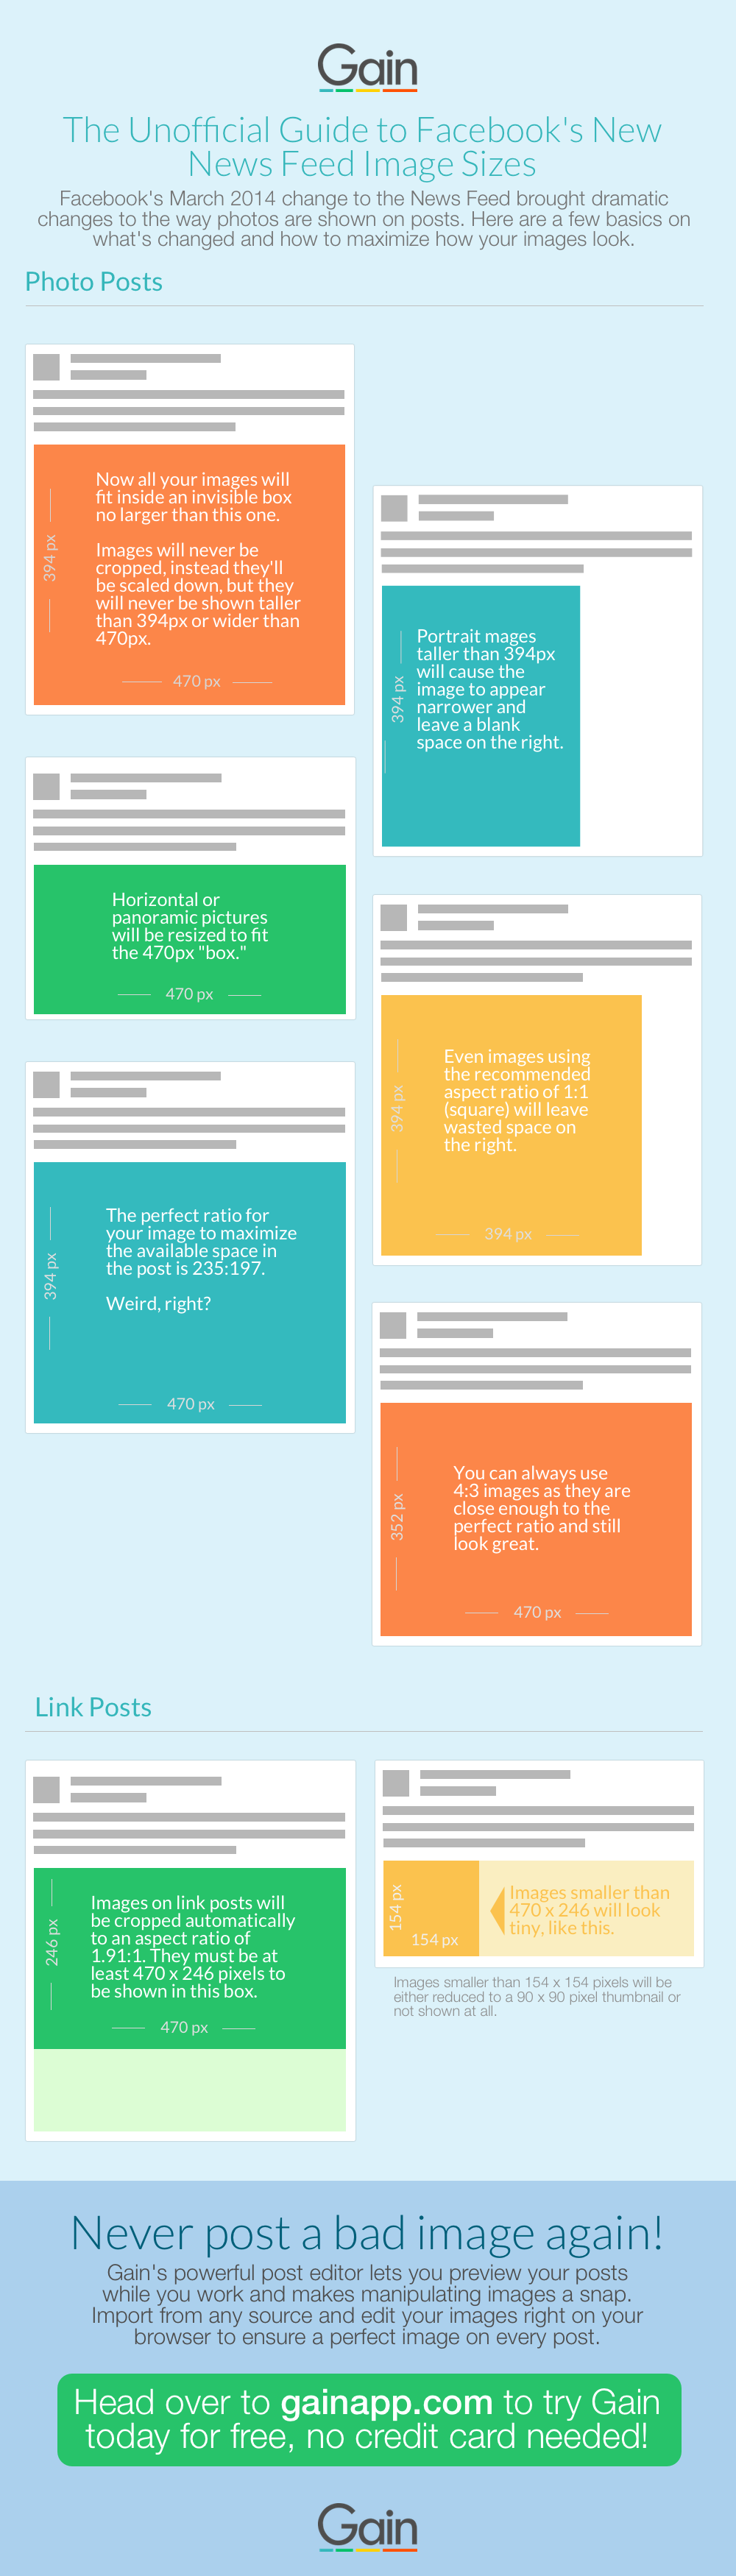 Infographic: The Unofficial Guide to Facebook's New News Feed Image Sizes [Infographic]